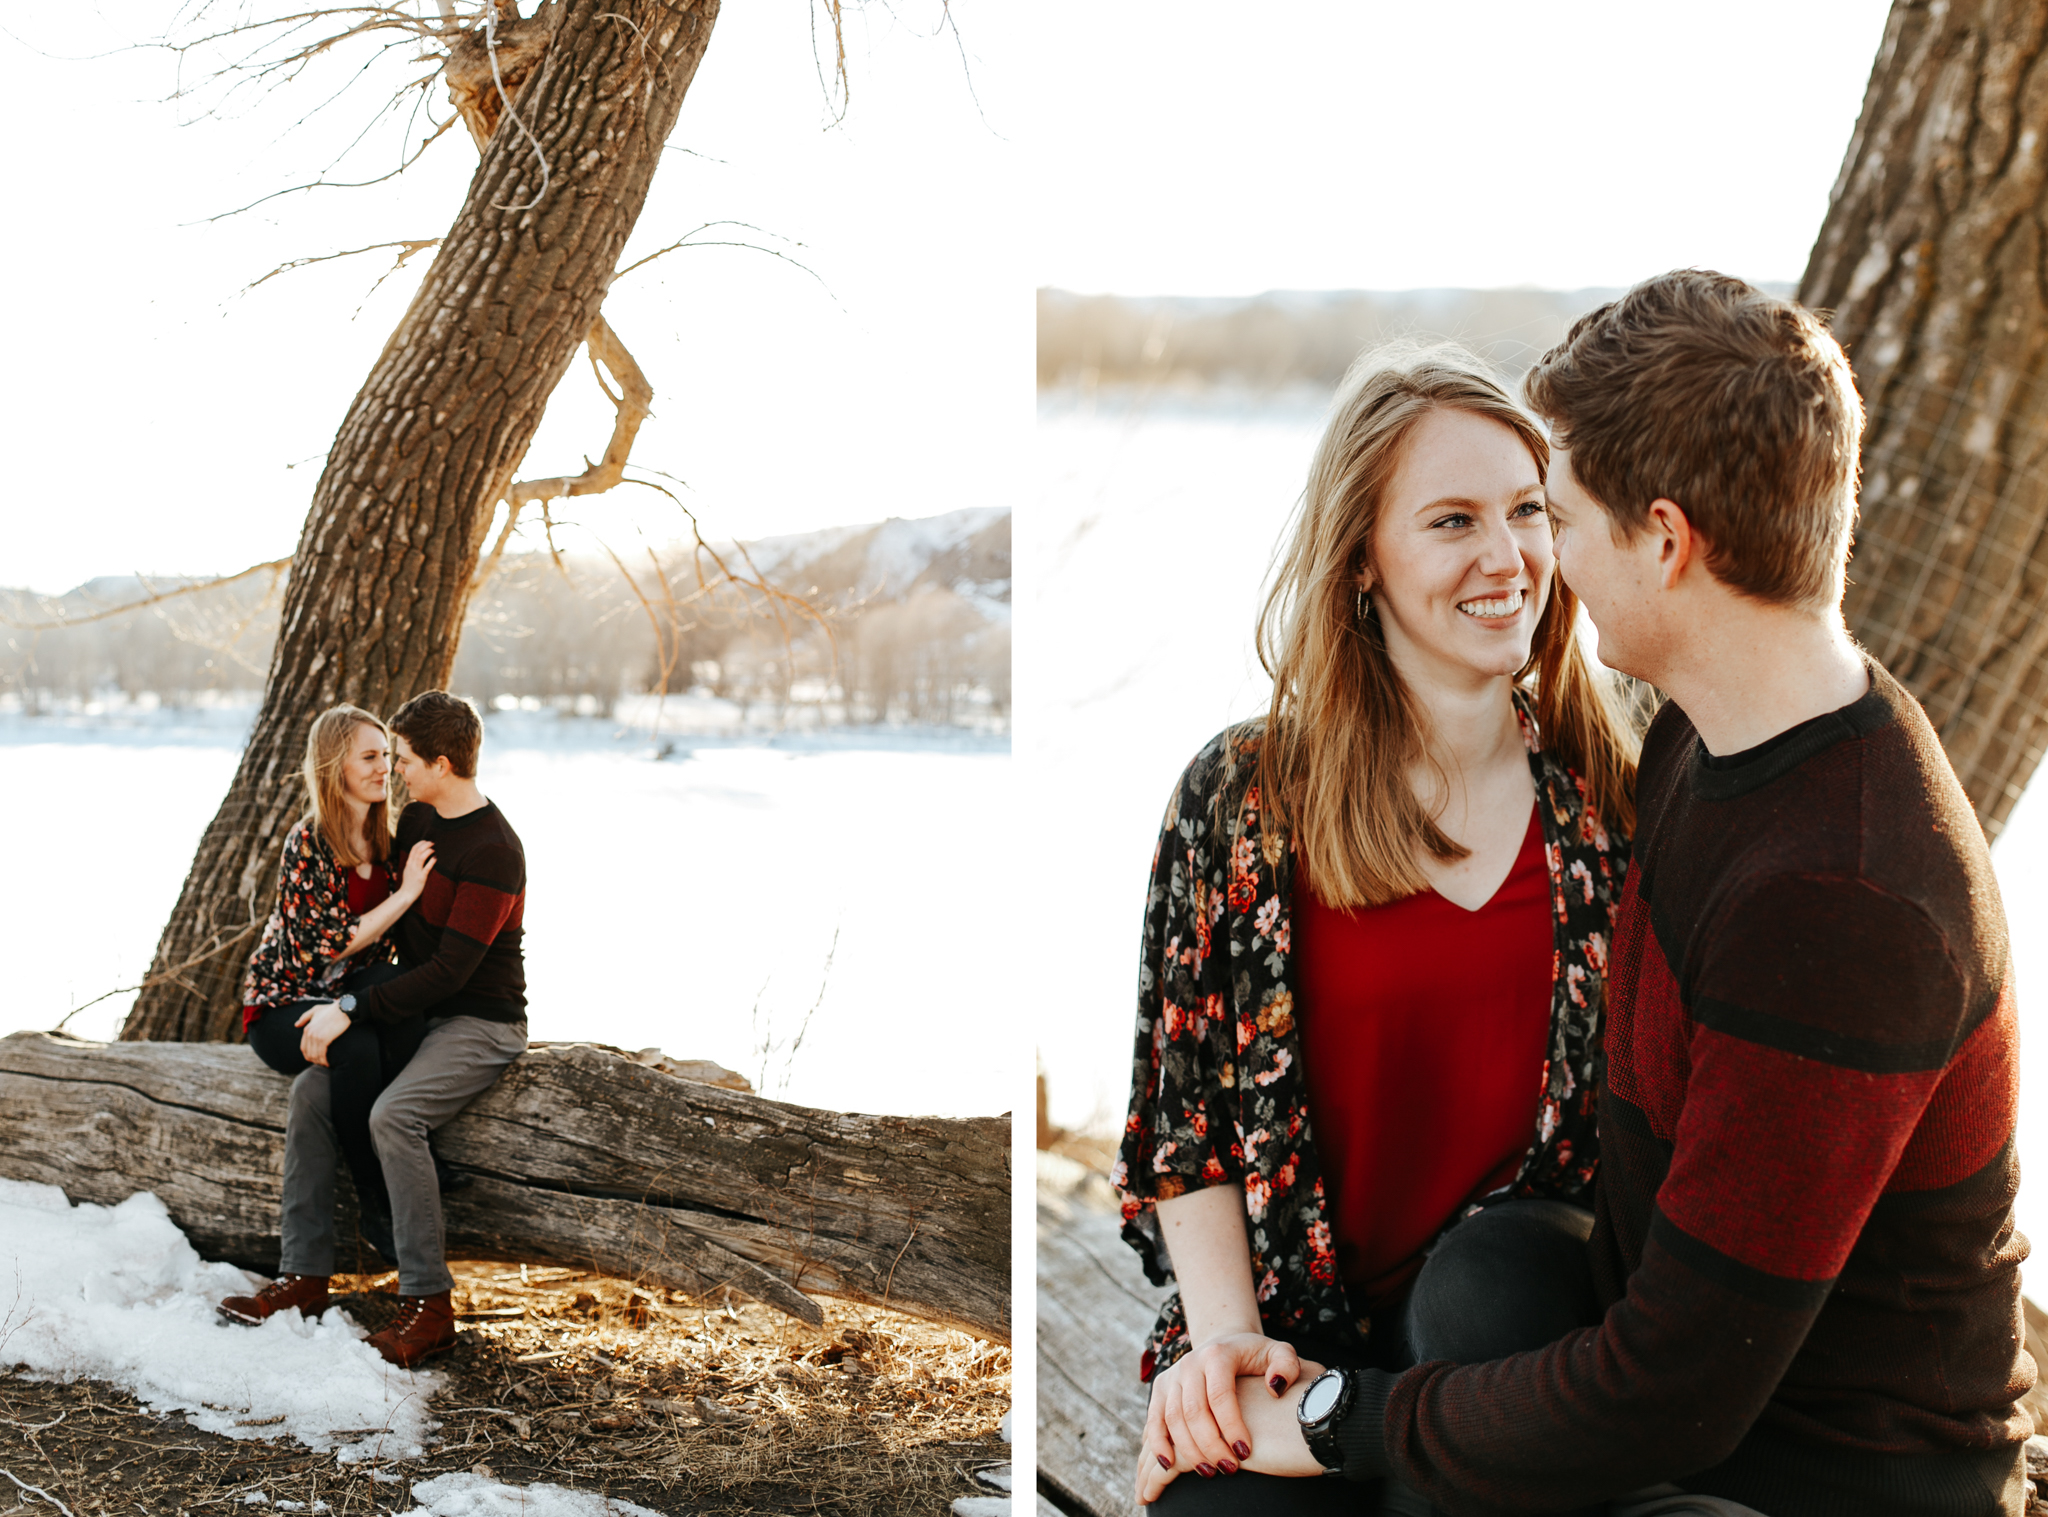 lethbridge-photographer-love-and-be-loved-photography-wedding-engagement-coulees-stuart-lacey-pavan-park-photo-image-picture-71.jpg